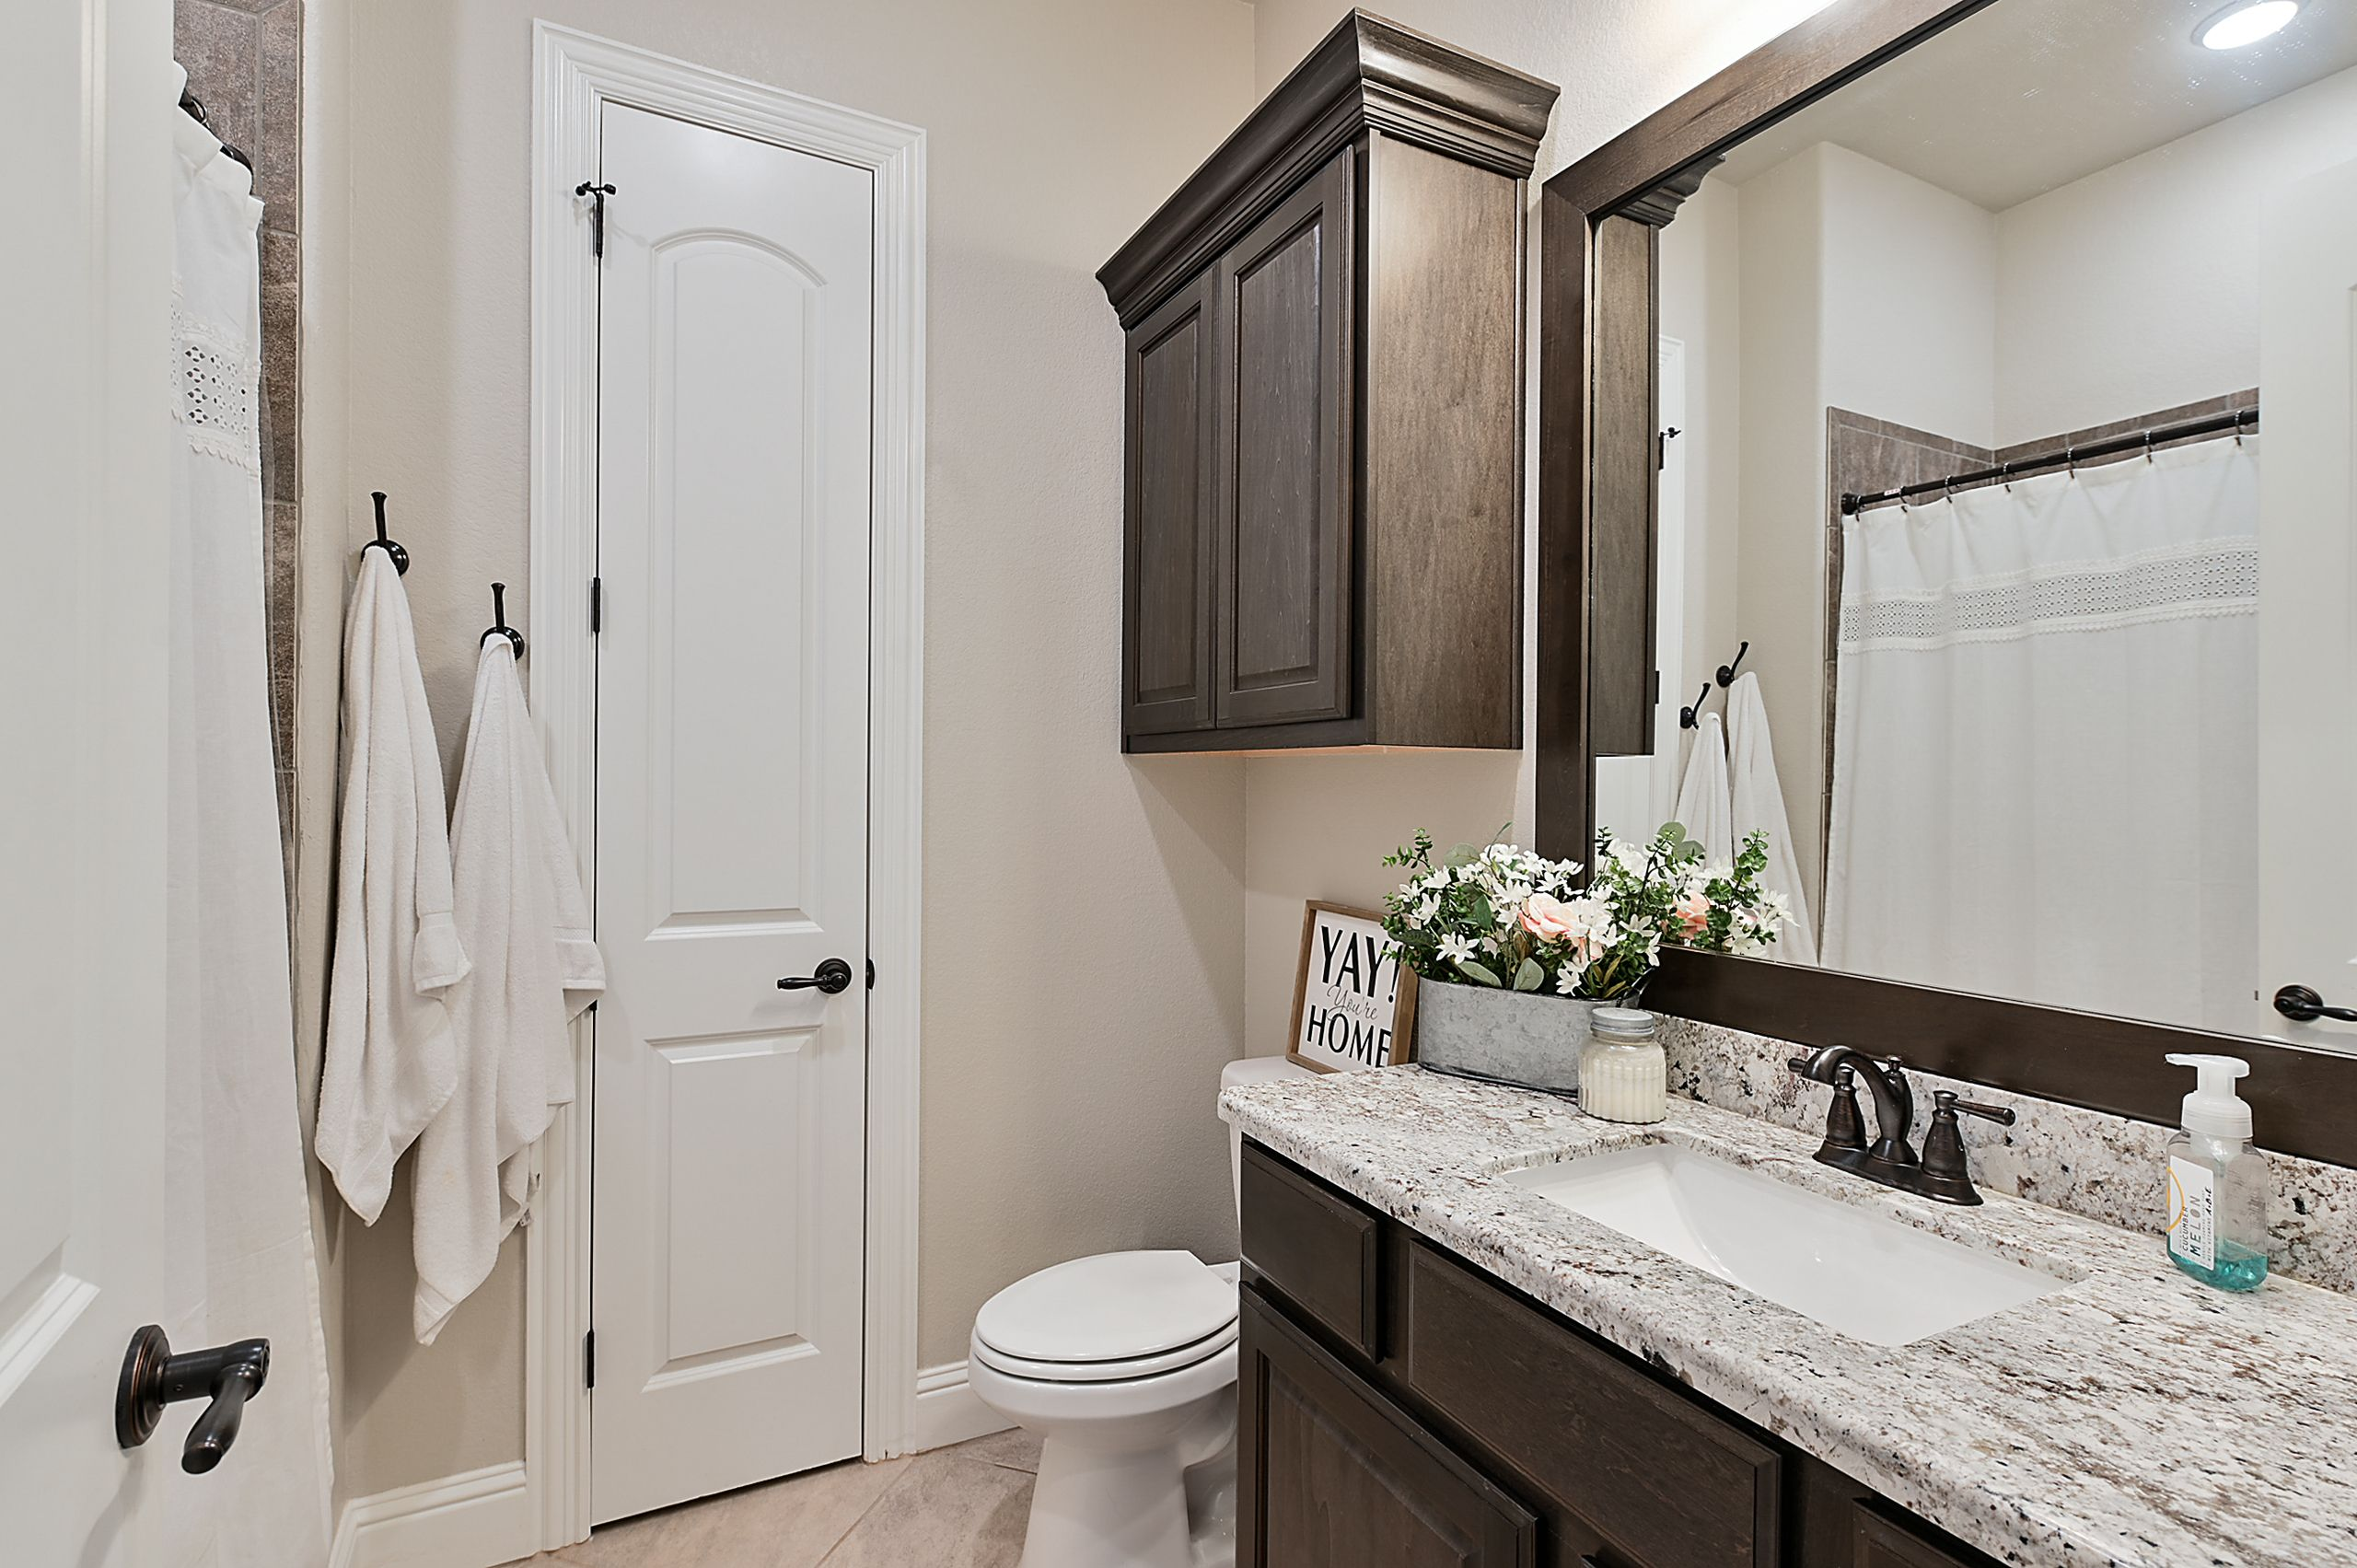 Bathroom featured in the 4406 Uphor Court By Blackstone Homes in Bryan-College Station, TX